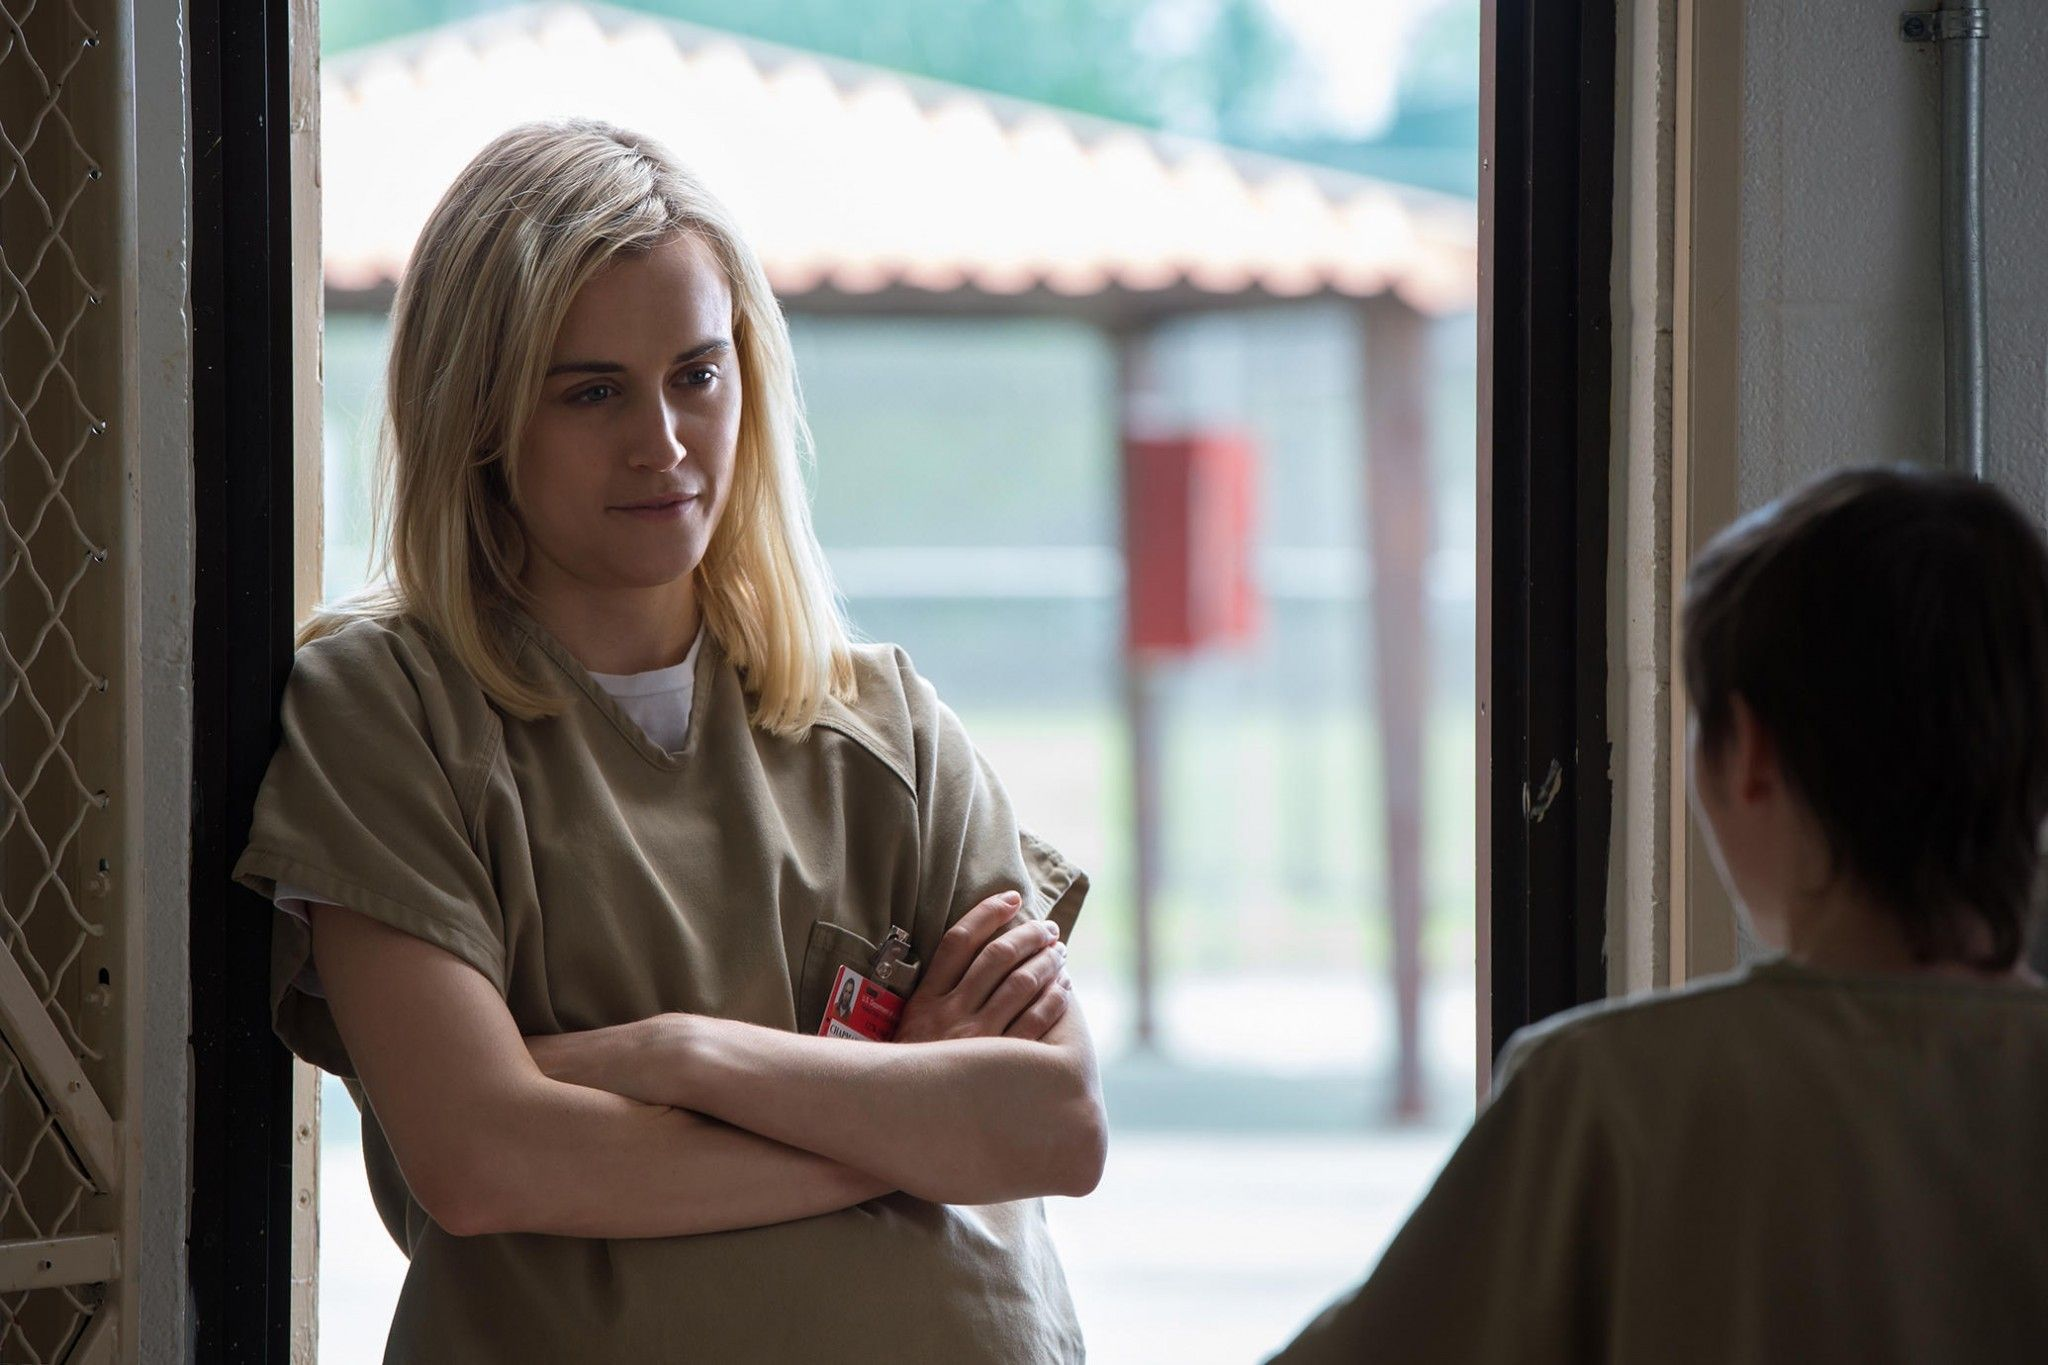 piper_chapman_orange_is_the_new_black_10_powerful_women_from_movies_and_tv_series_fabulous-muses